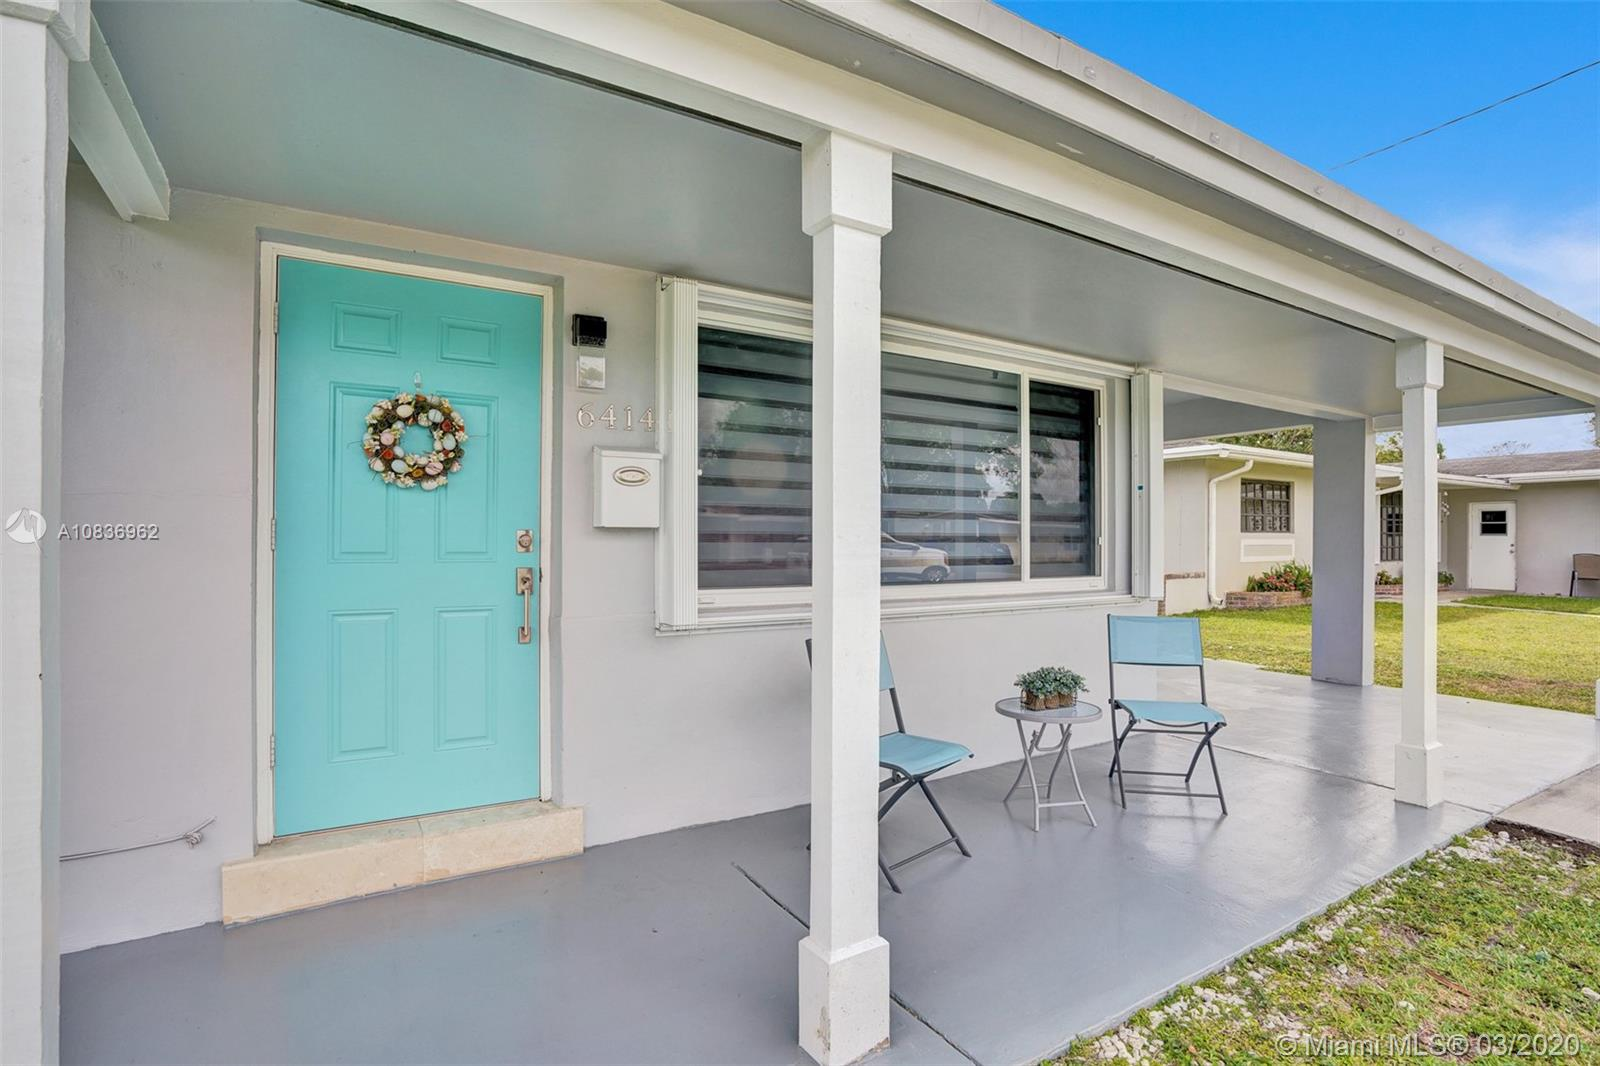 Fully upgraded home 3be 2ba in the desired Boulevard Height Pembroke, great floor plan with bonus space, good size backyard, fully fenced for your privacy, No HOA, great location, owner did not spare in upgrades, Roof 2019, accordion shutters and impacts doors, HVAC system with UV light, AC ducts, Nest thermostat, tankless water heater, new Master and Interior Electric panel, Travertine flooring, laminate floors in beds, Mini split system, real wood kitchen cabinetry with quartz countertop, Stainless steal appliances, recessed lighting, no popcorn ceiling, crown molding, fully upgraded bathrooms, new driveway, wood cabinetry in laundry room, sprinkler system, freshly painted in and outside, everything done with permits, Ready to move in just hurry and come to live in your dream home!!